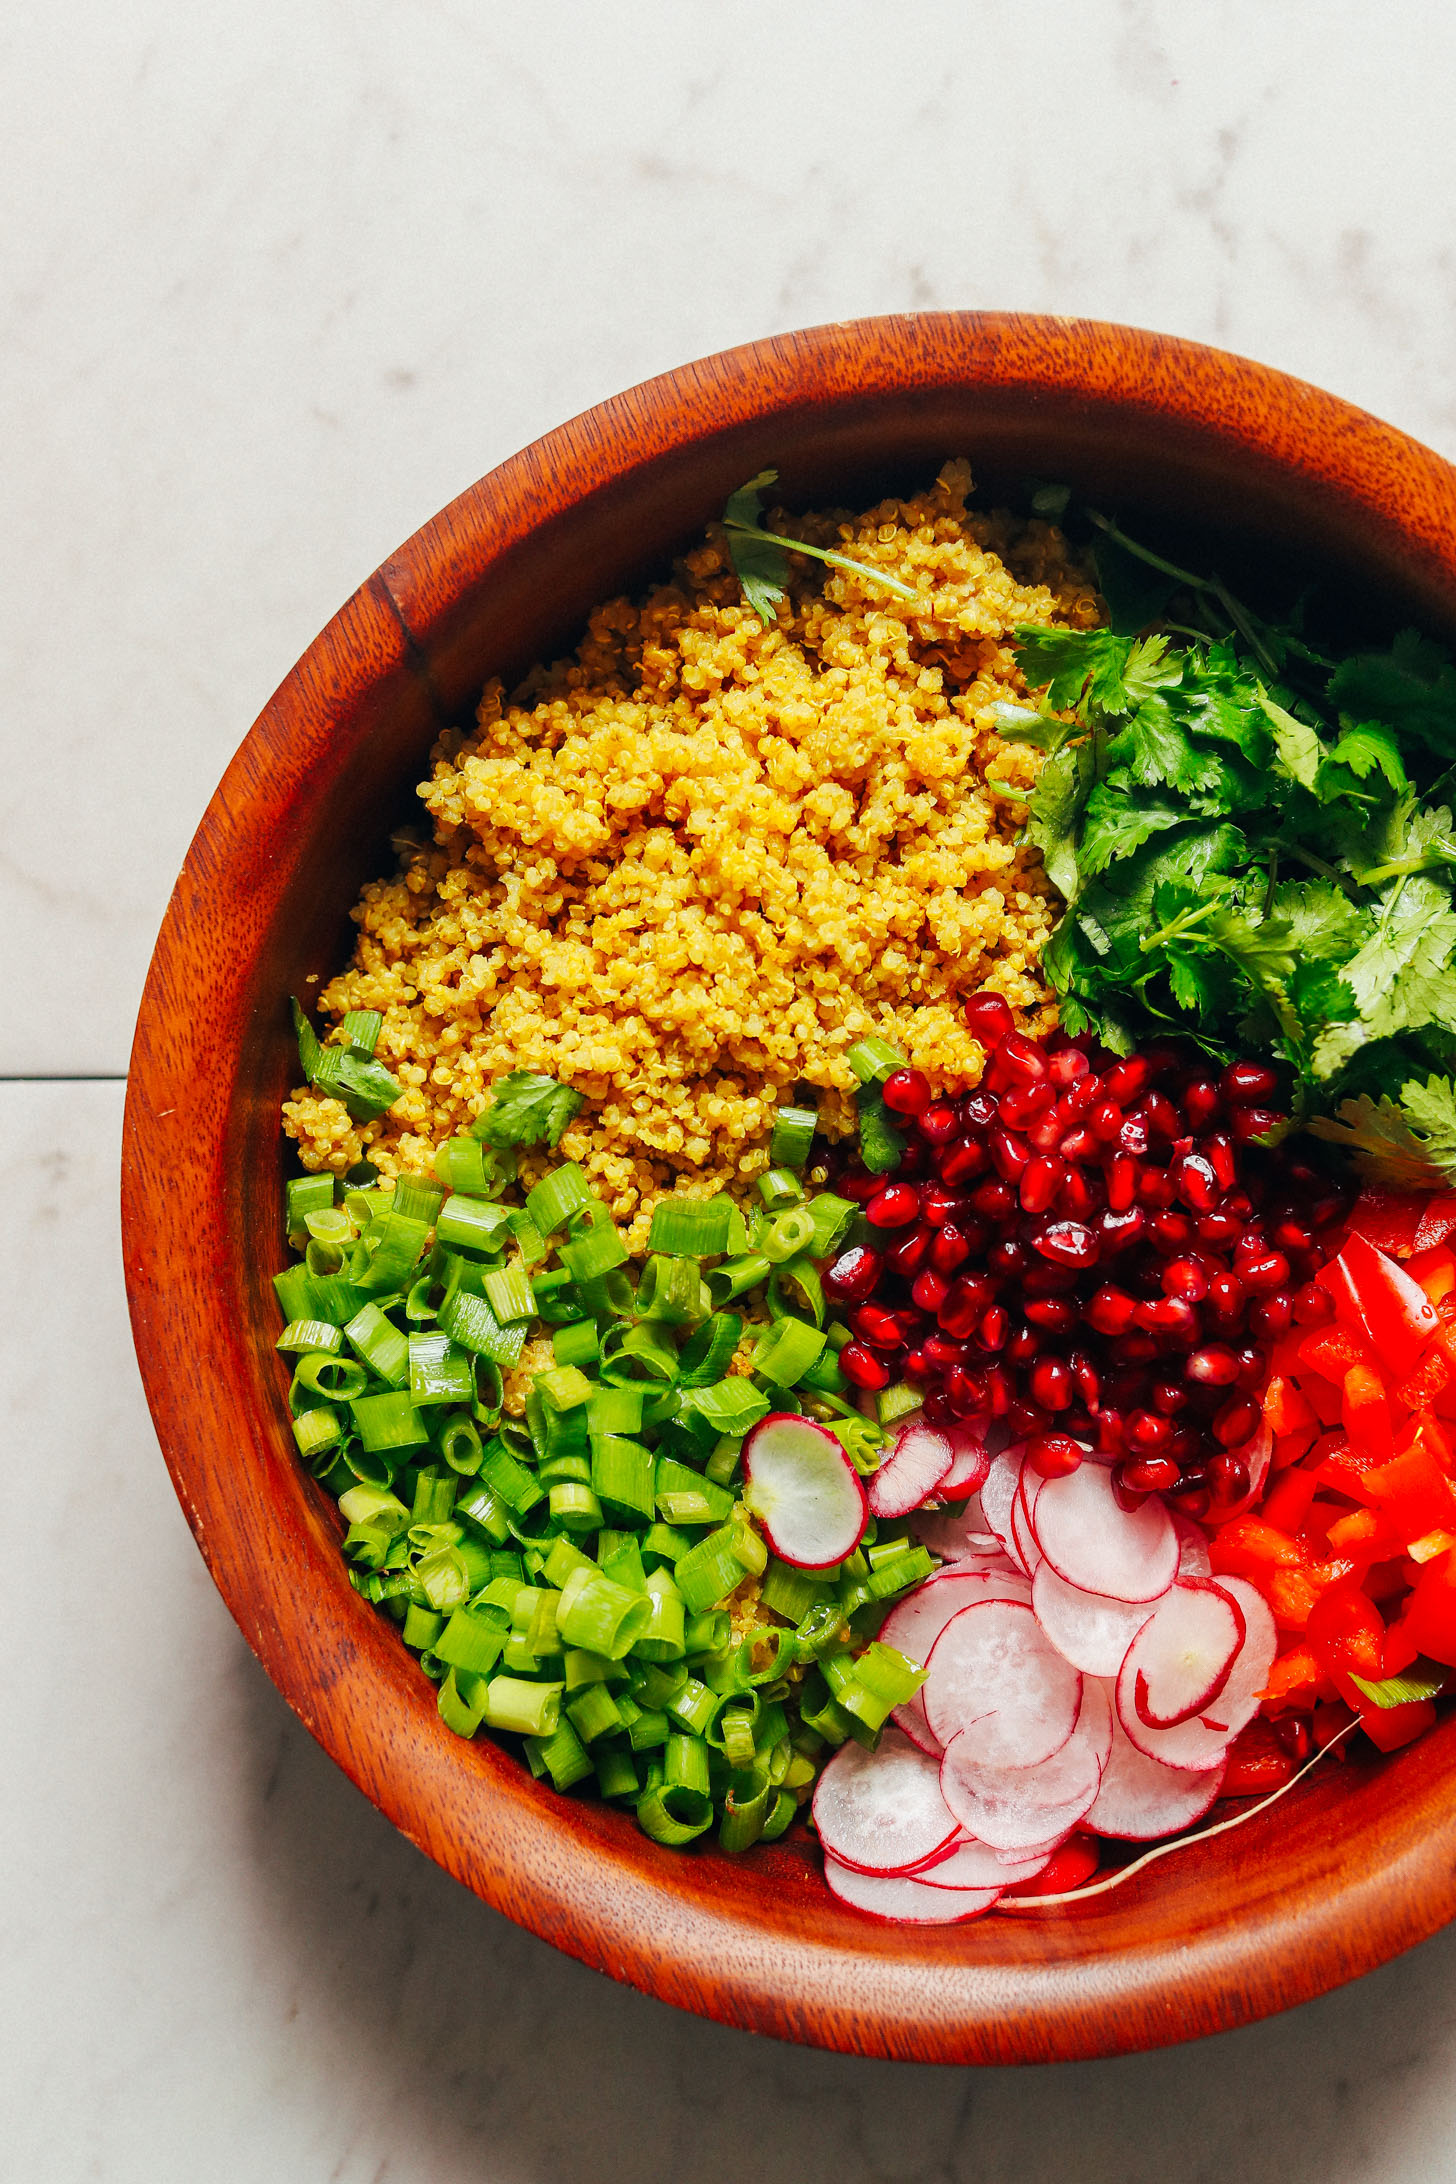 Large wooden salad bowl with Curried Quinoa Salad with vegetables